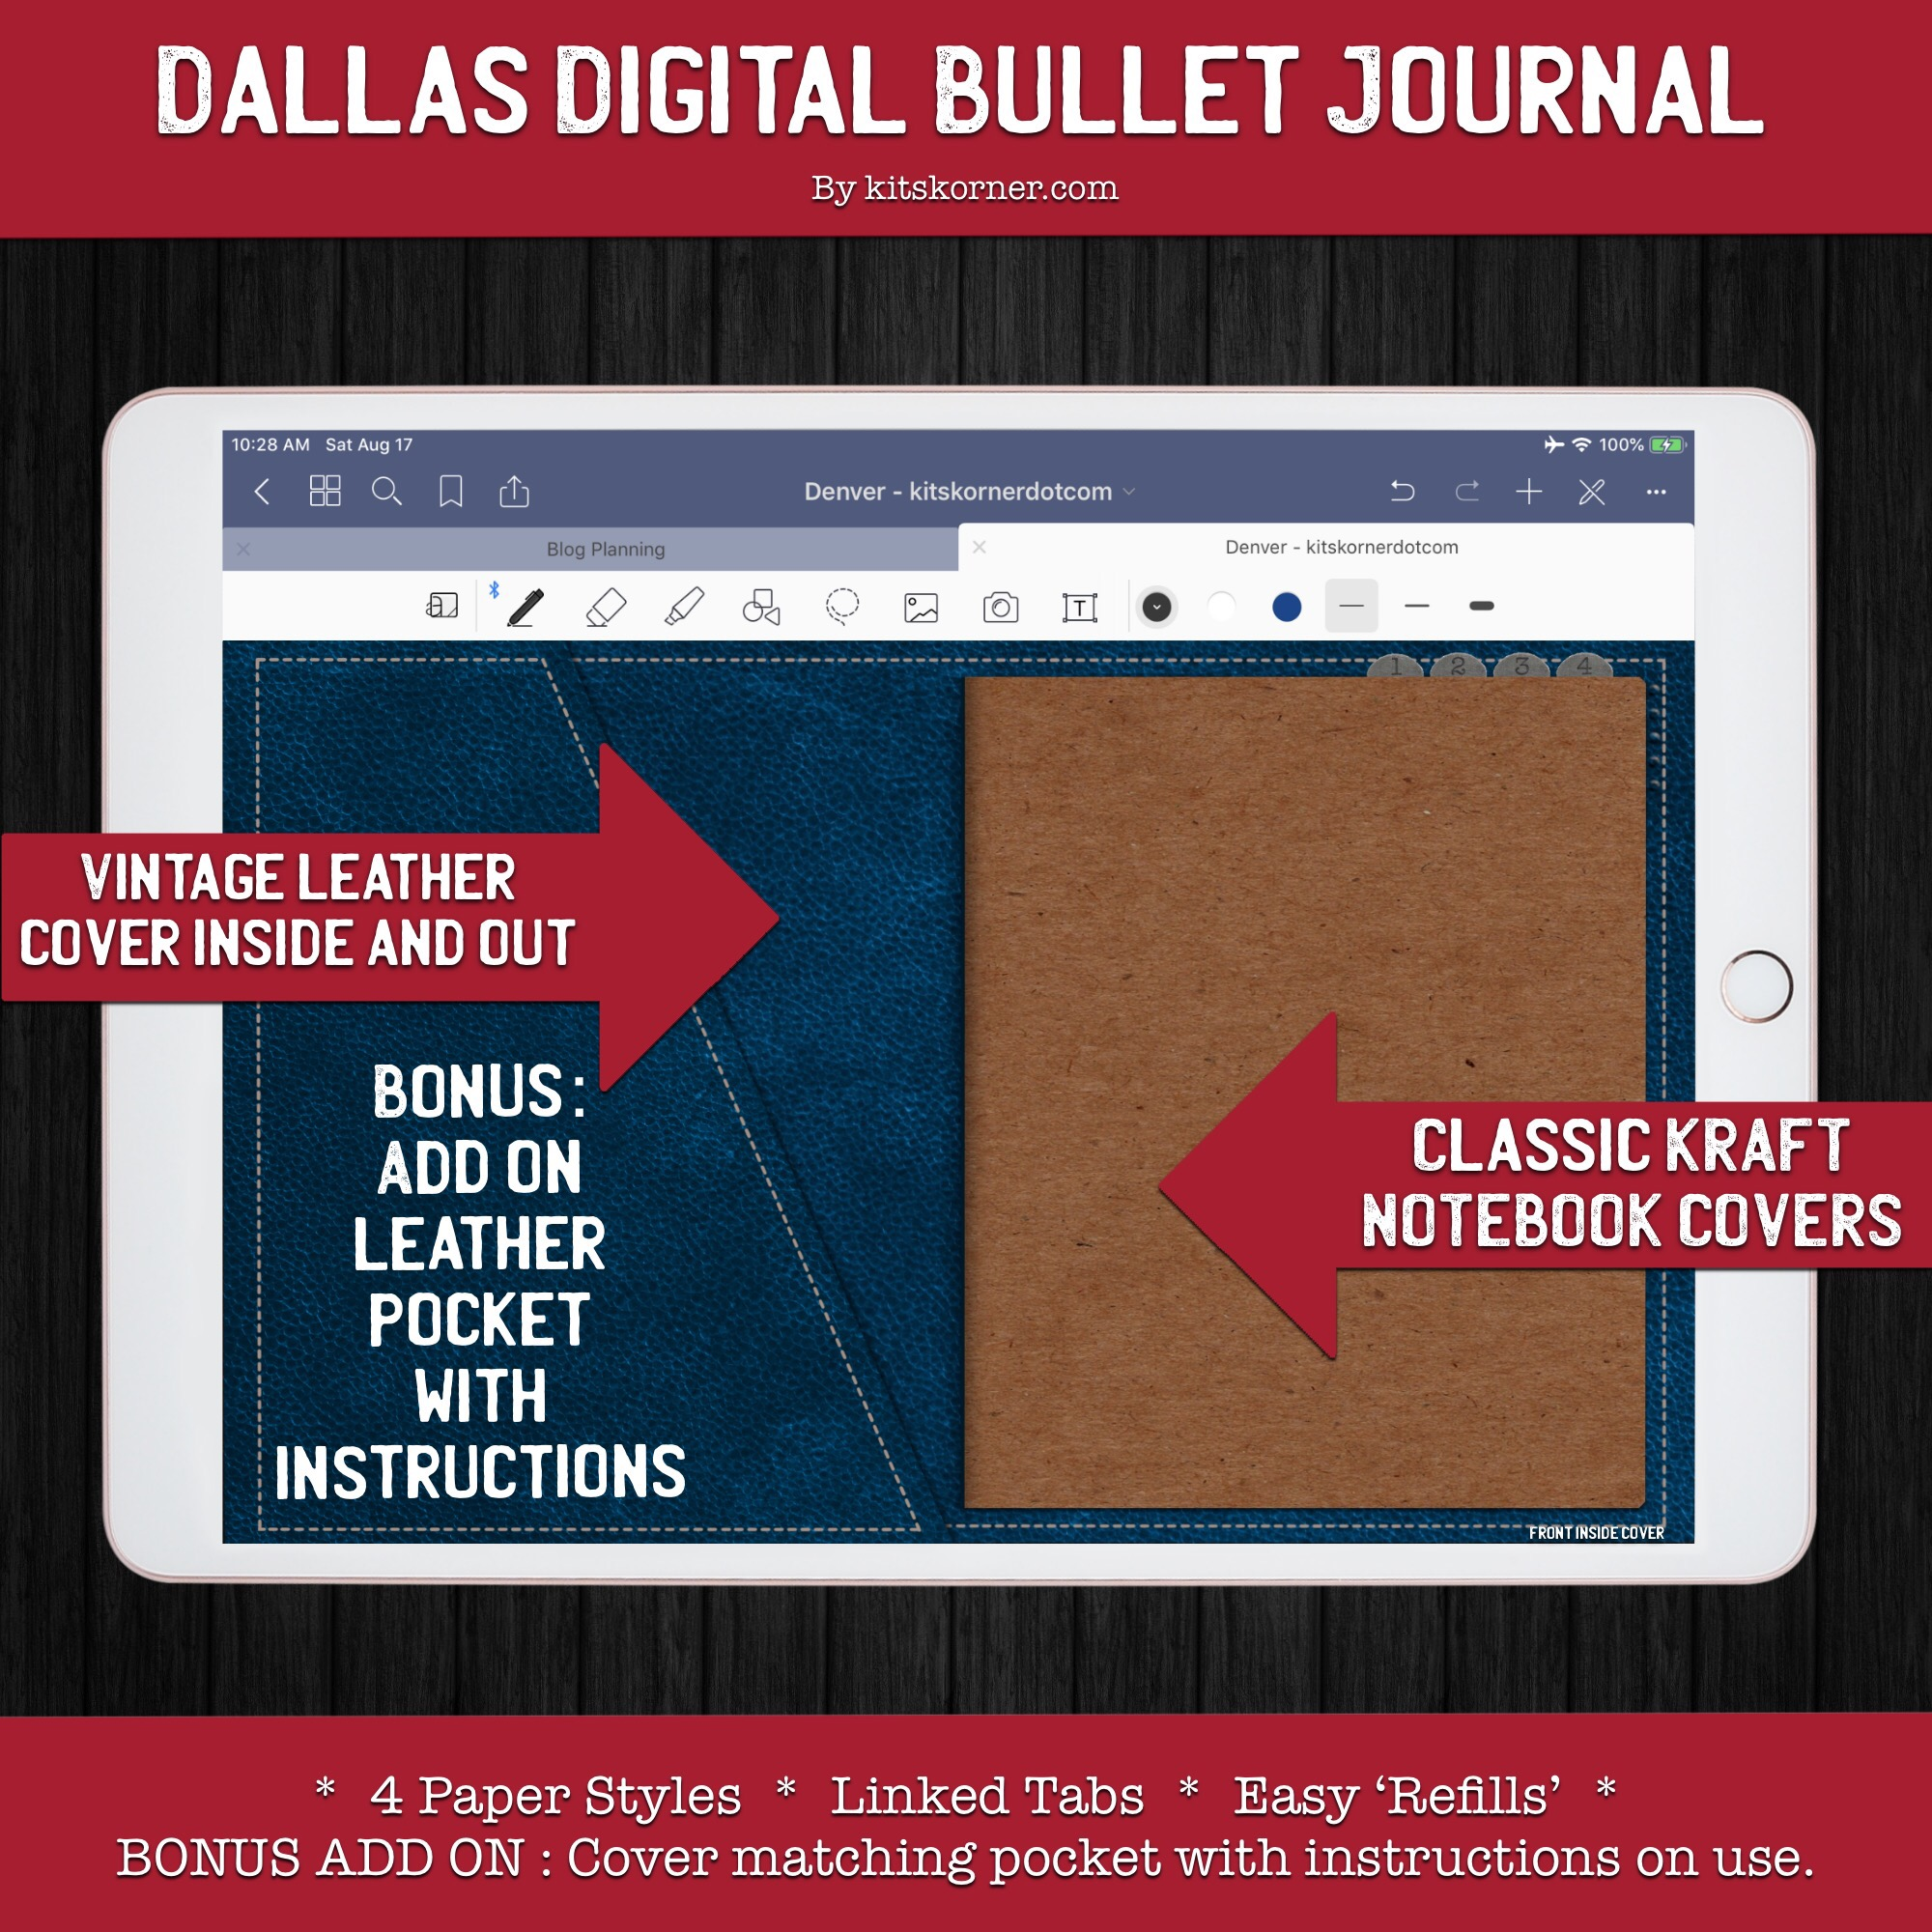 Dallas Digital Bullet Journal